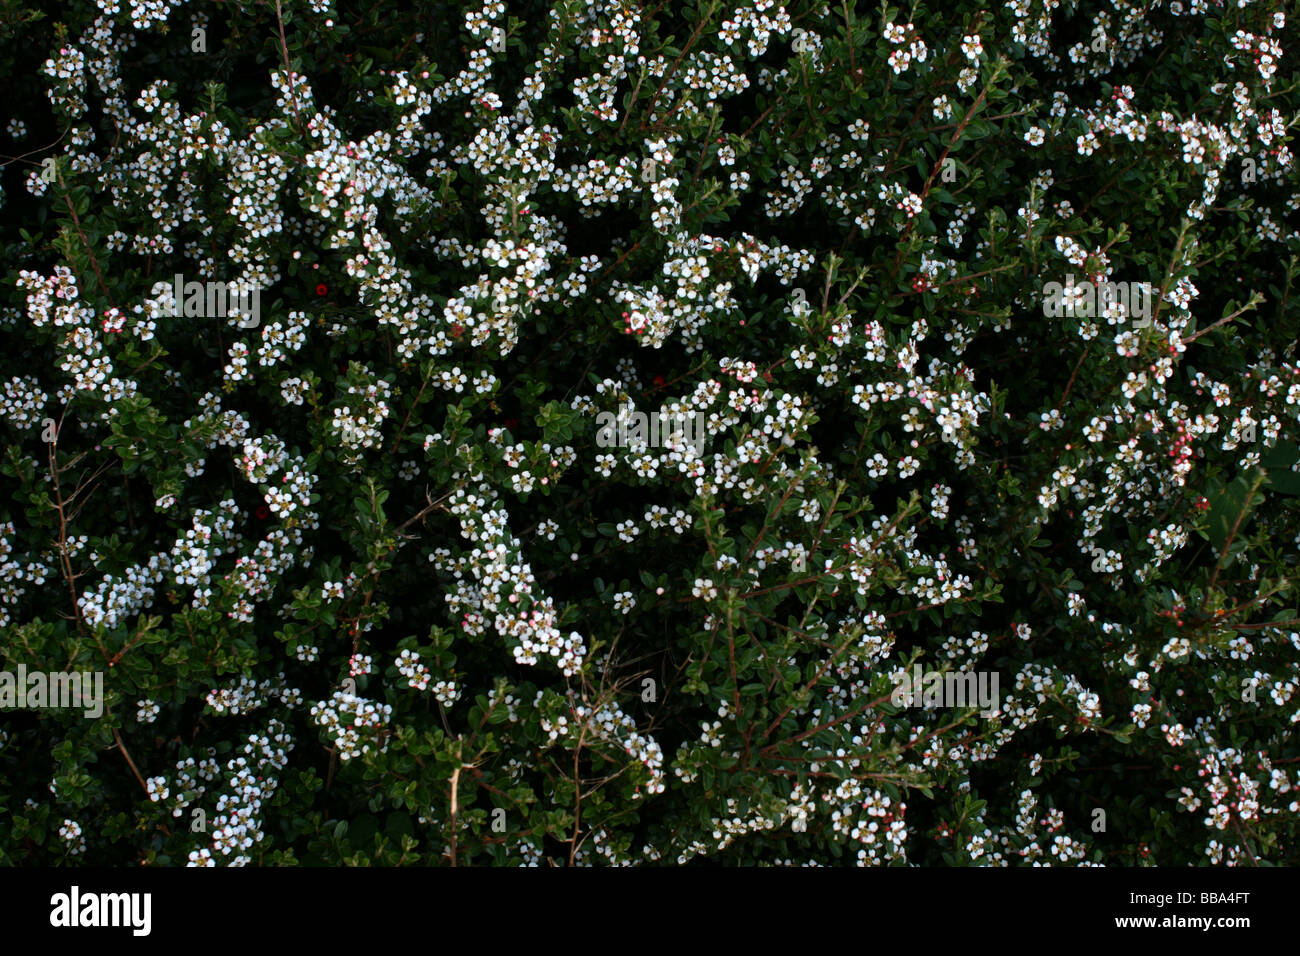 Bush small white flowers on stock photos bush small white flowers white flowers on a bush stock image mightylinksfo